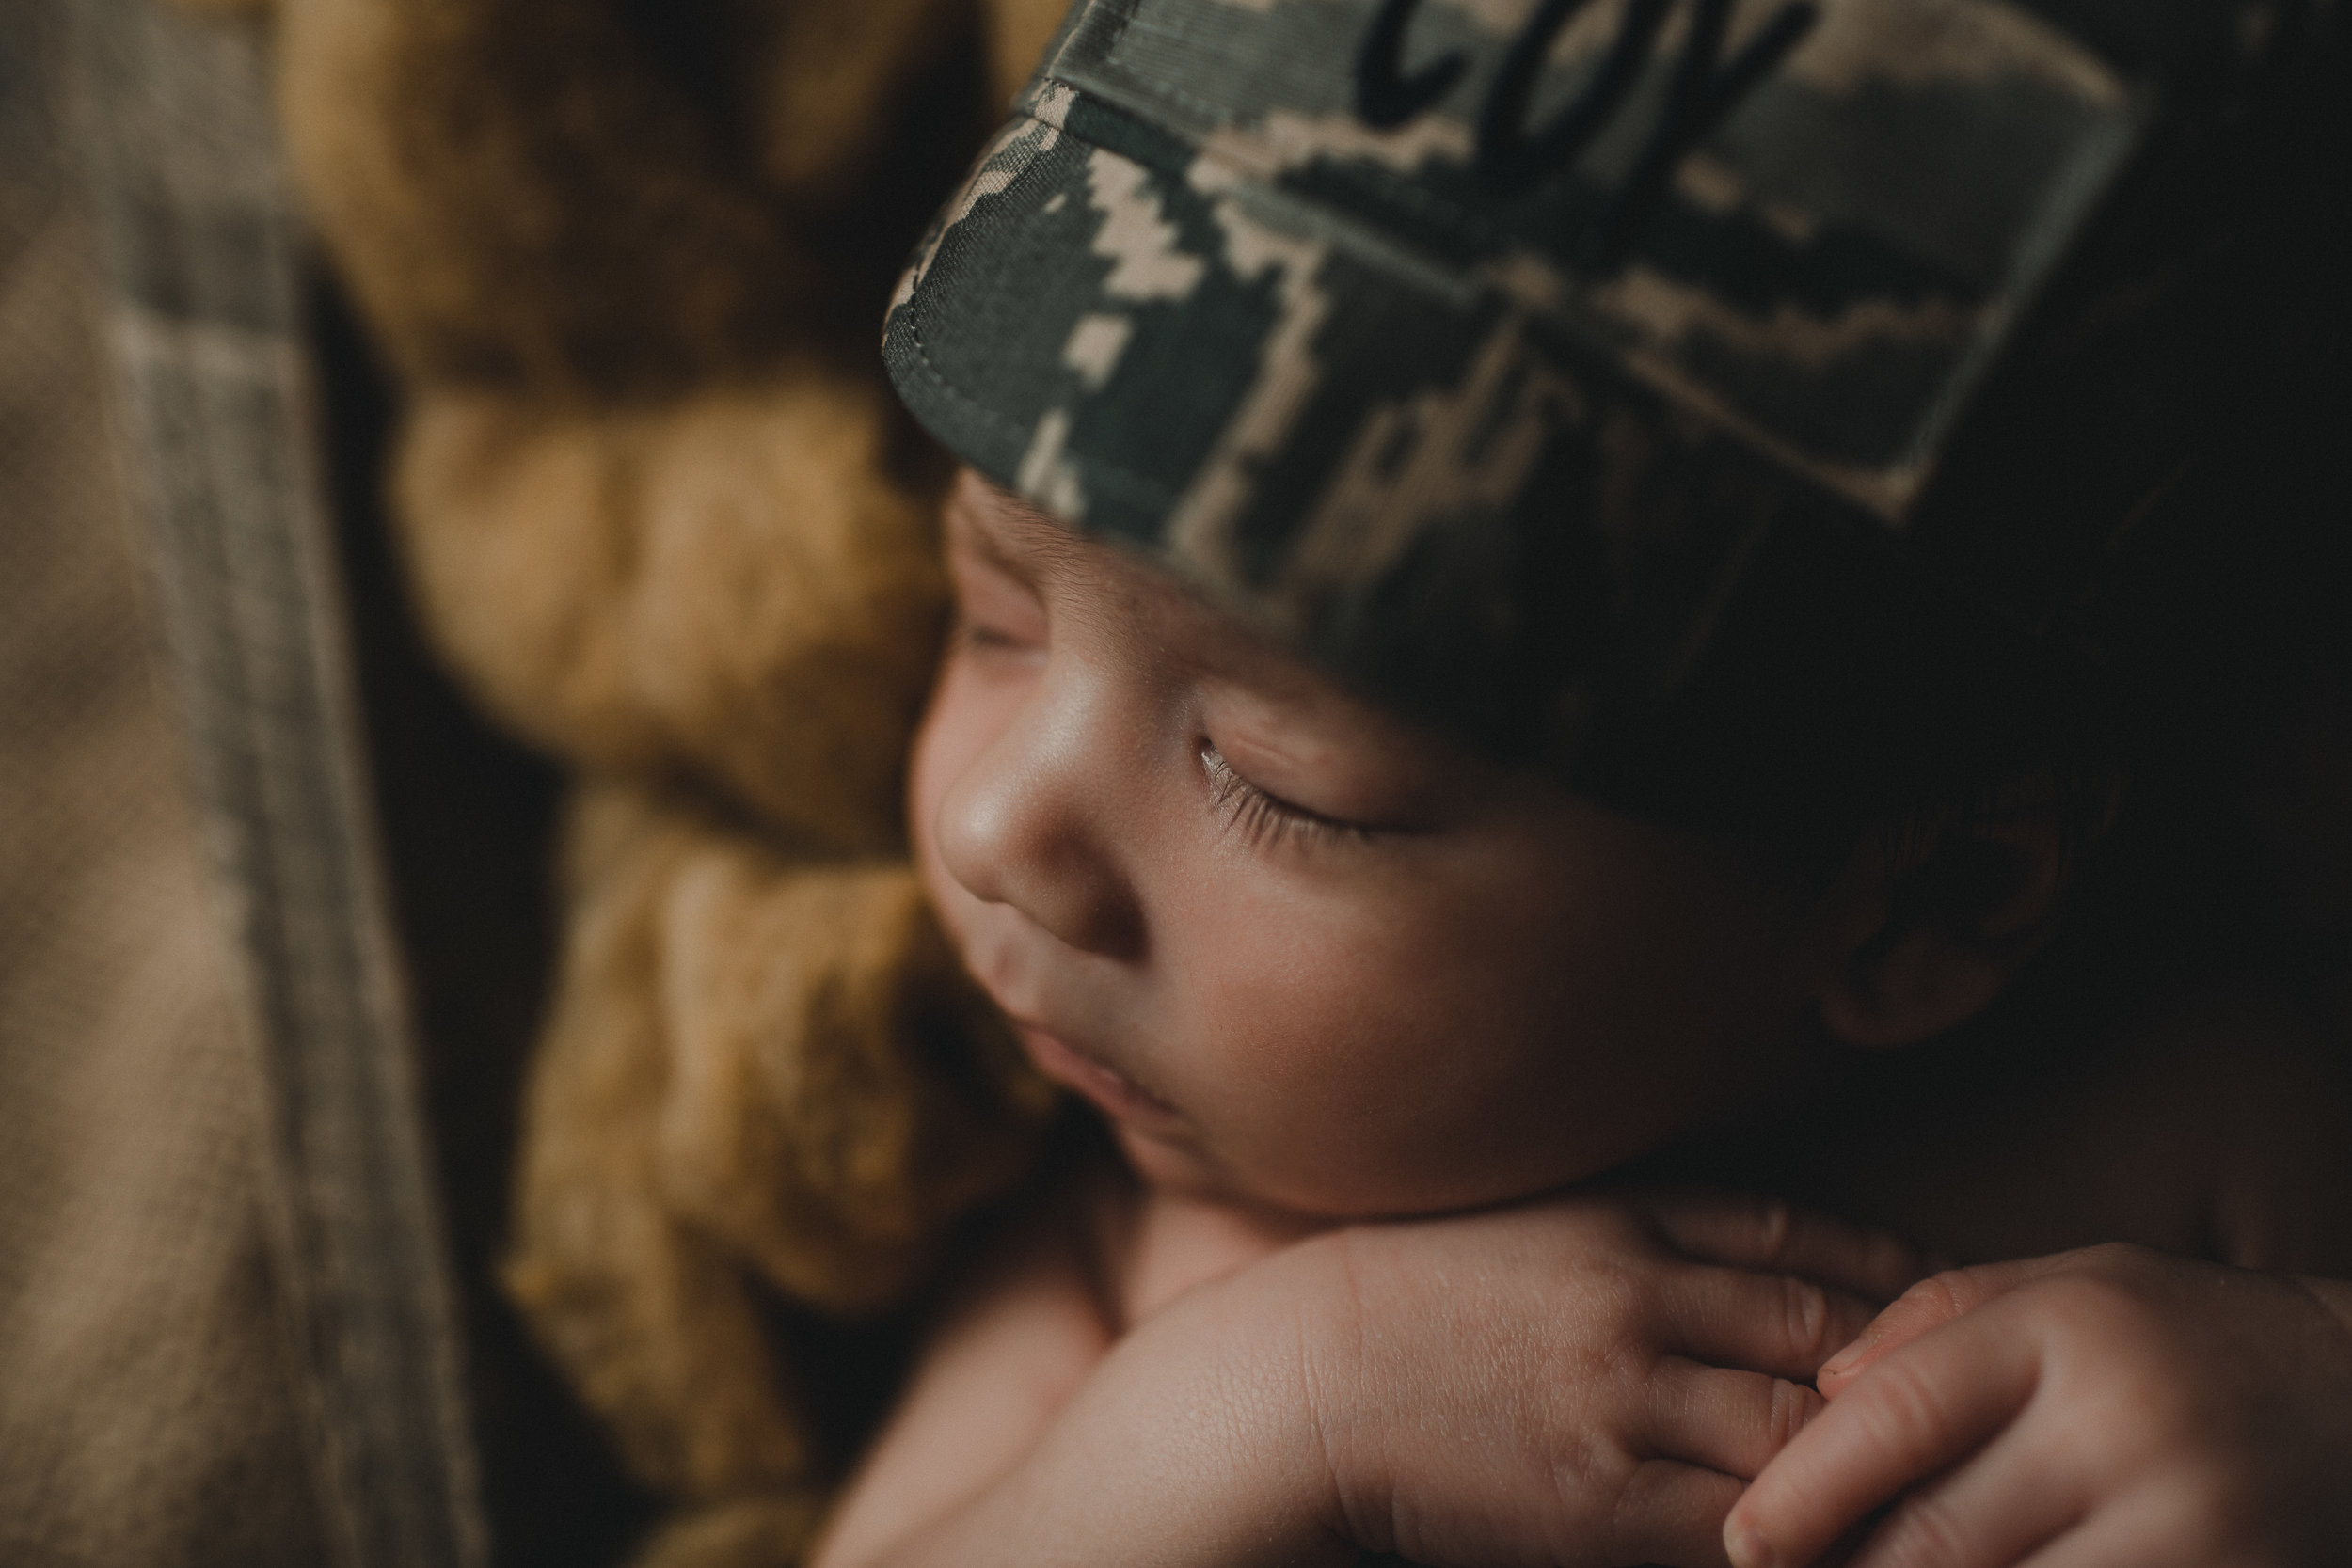 Rustic Newborn Photo Session | Baby Boy | Farmhouse Newborn Studio Session | Military Baby Boy | Terry Farms Photography